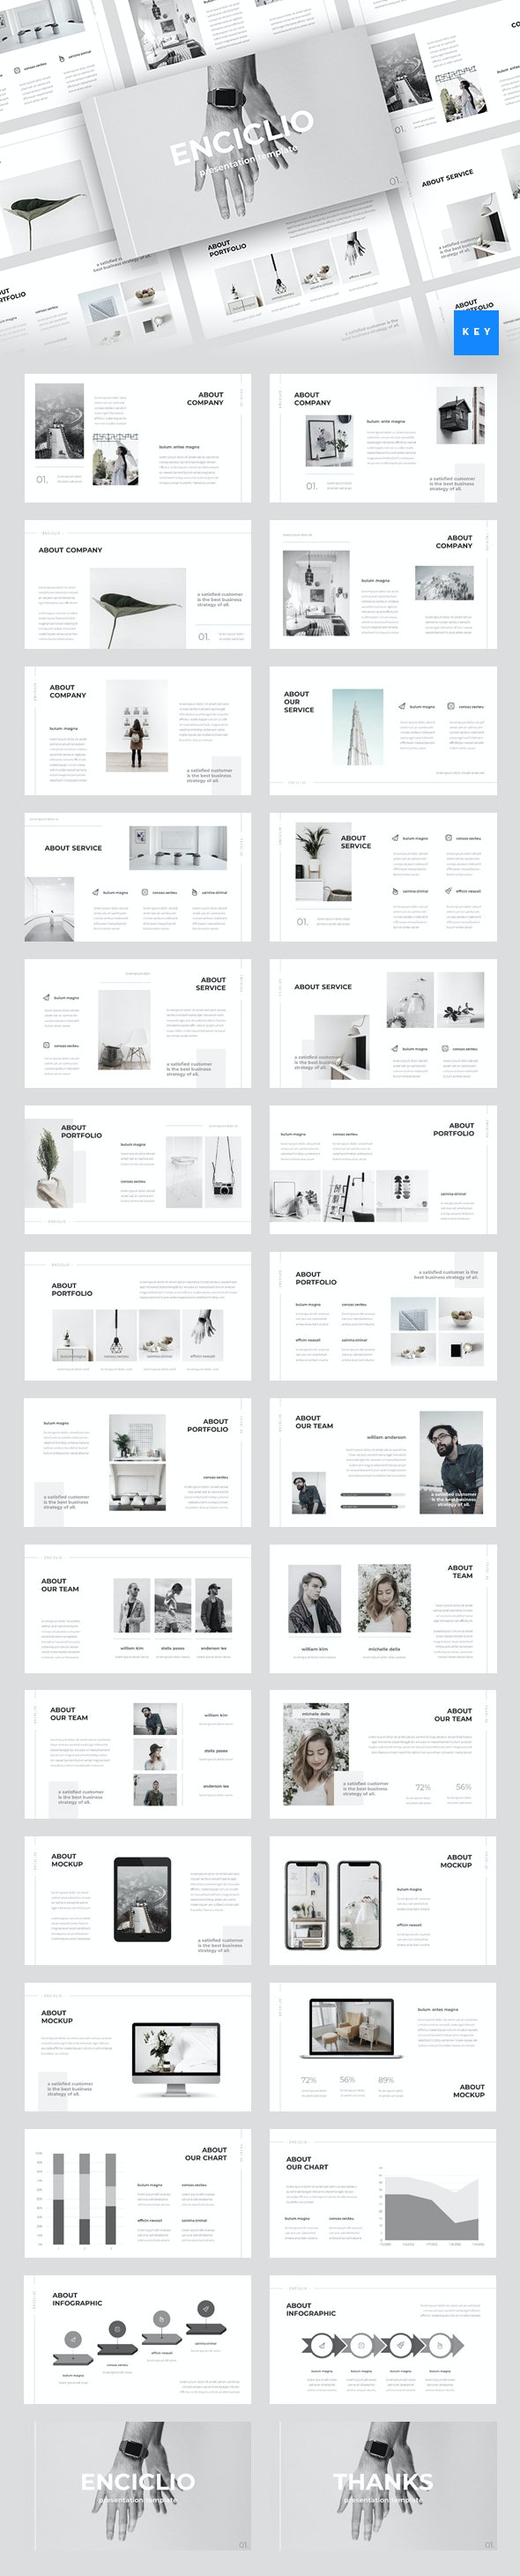 Enciclio - Creative Keynote Template - Creative Keynote Templates